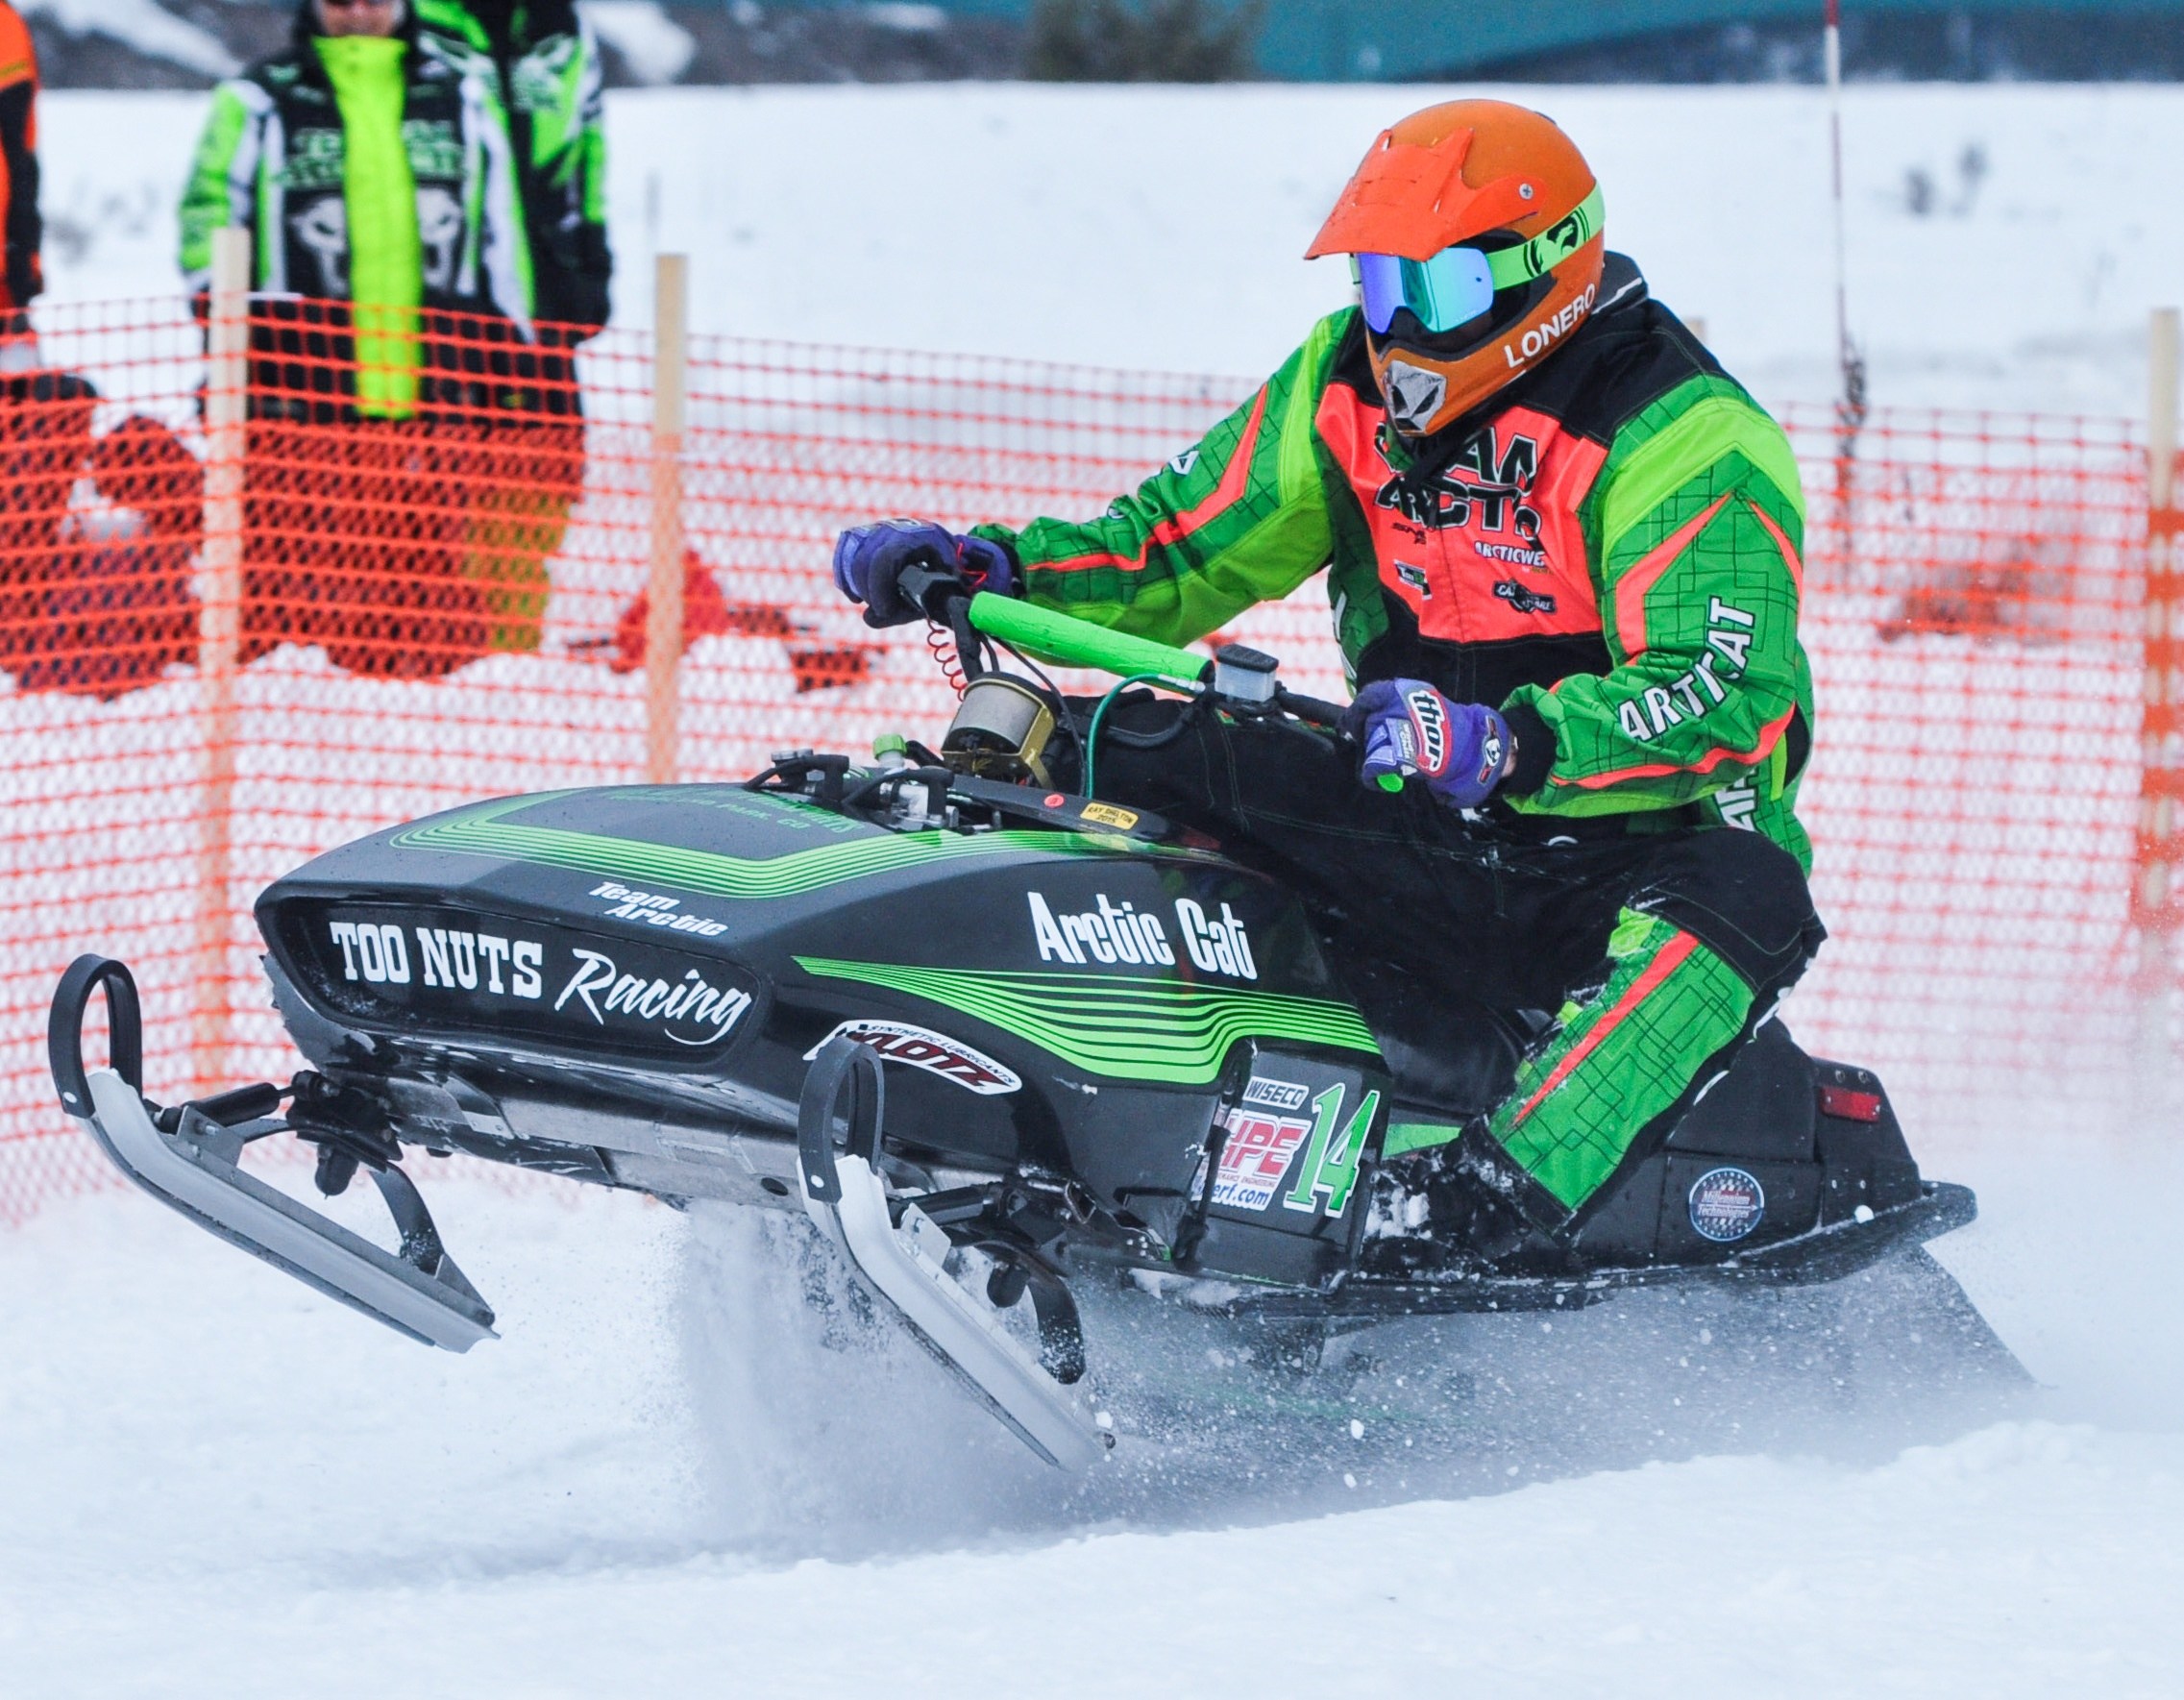 Tips for Prepping Your Snowmobile for the Season